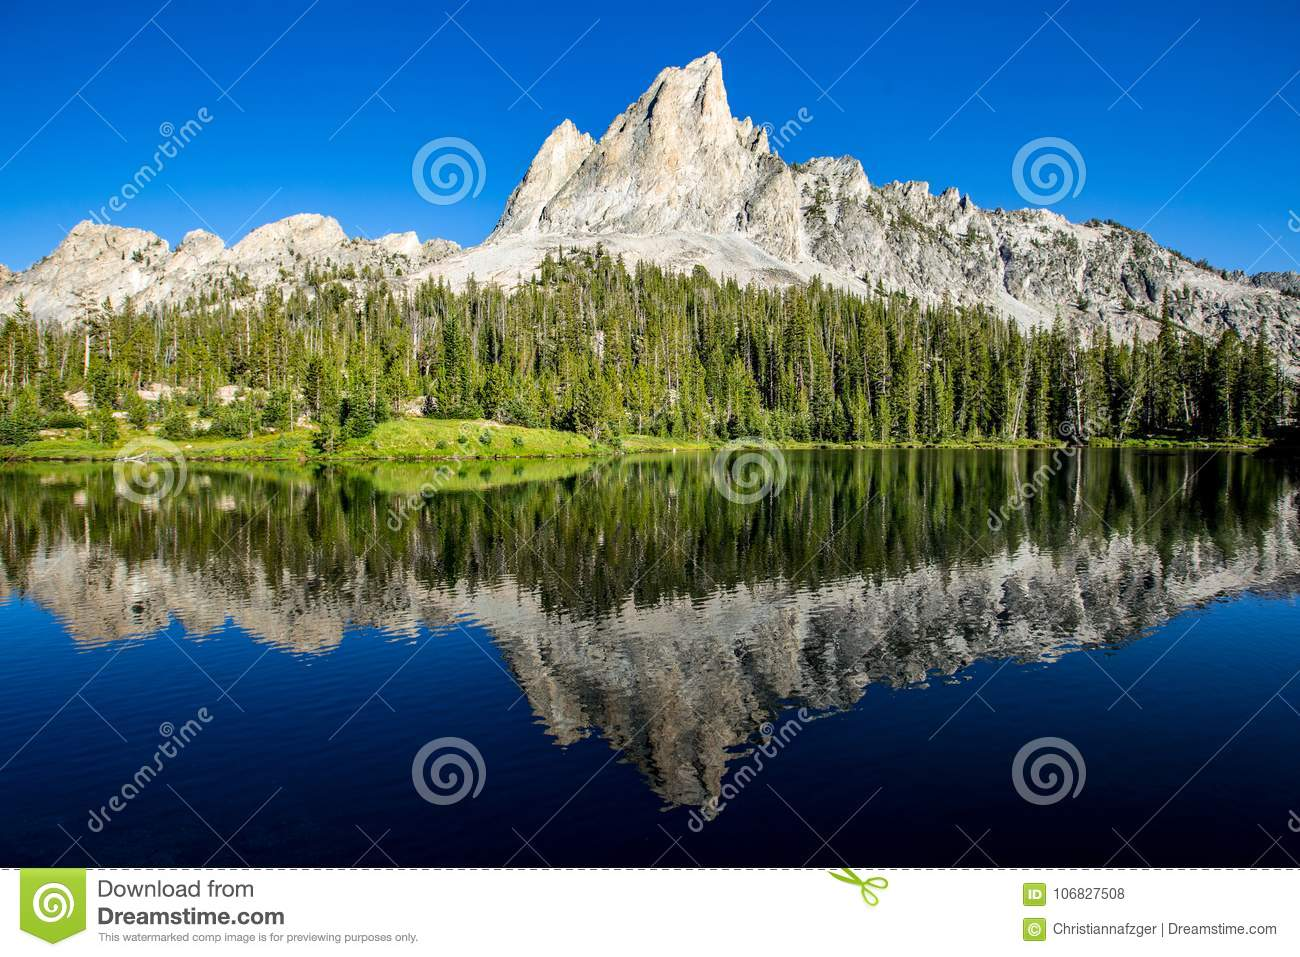 Sägezahnberge reflektiert in Alice Lake, Idaho